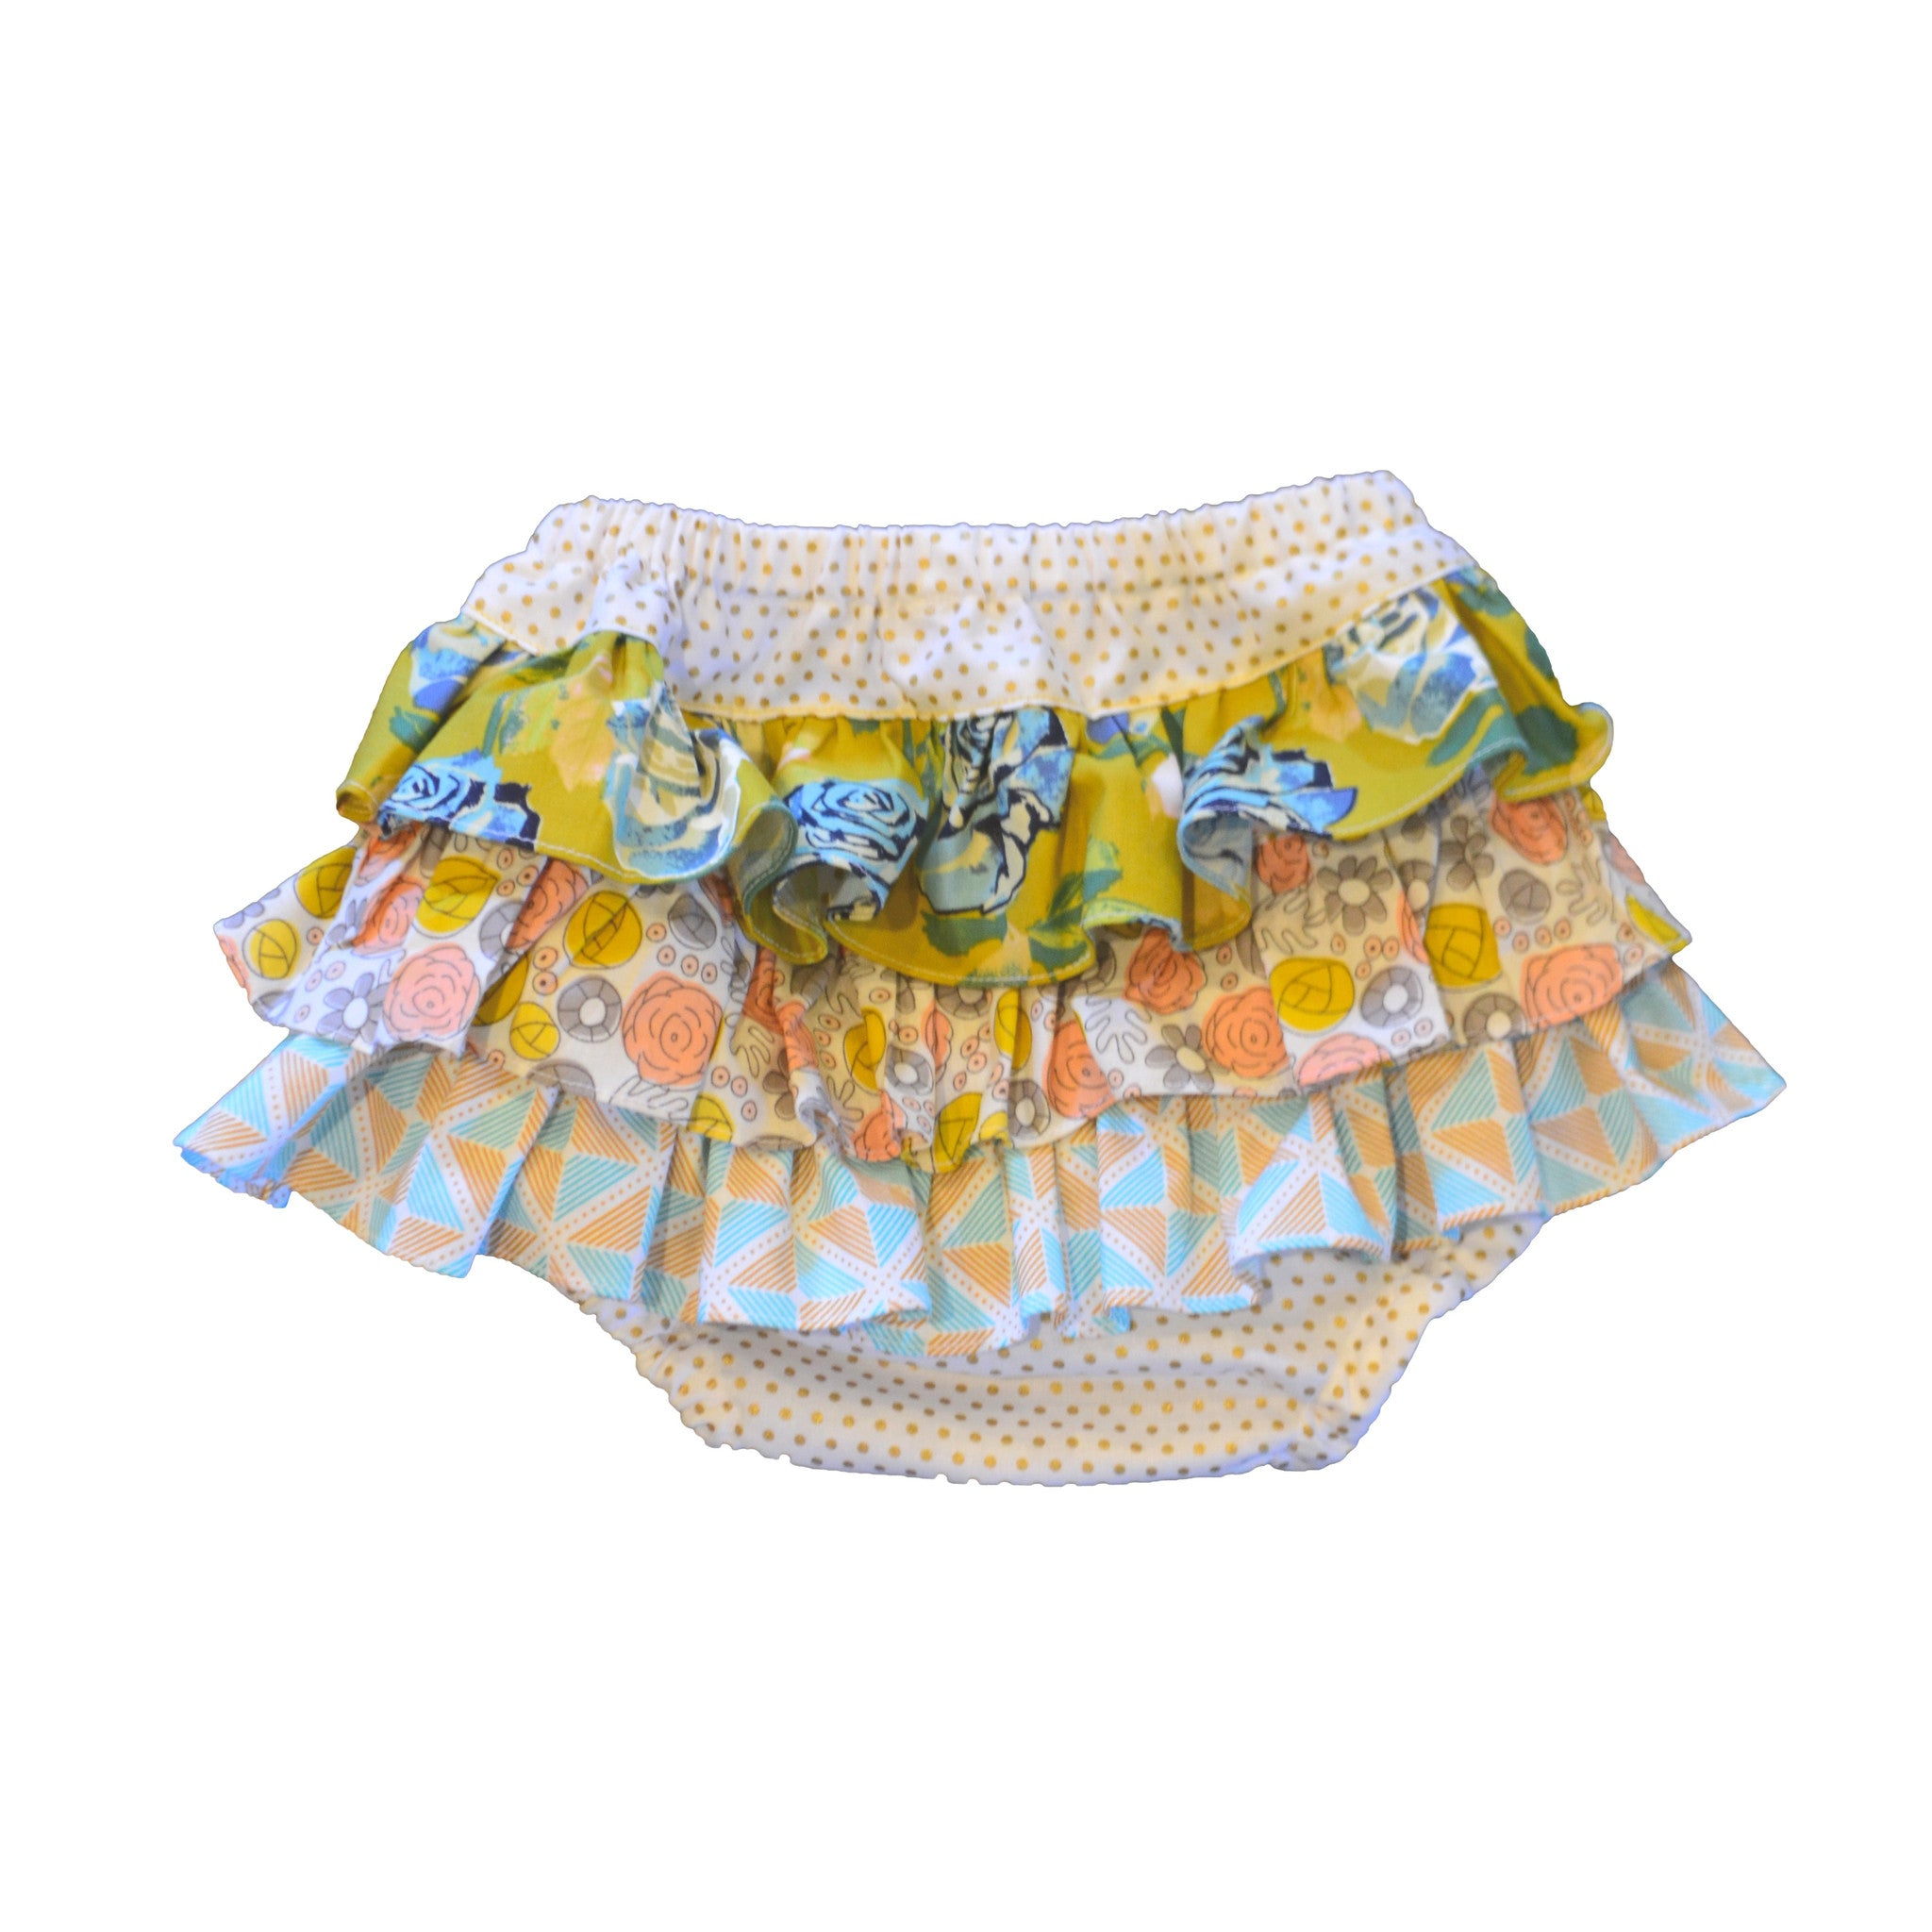 Designer Baby Girls Ruffle Bloomers, 100% Cotton, Handmade - Limited Edition